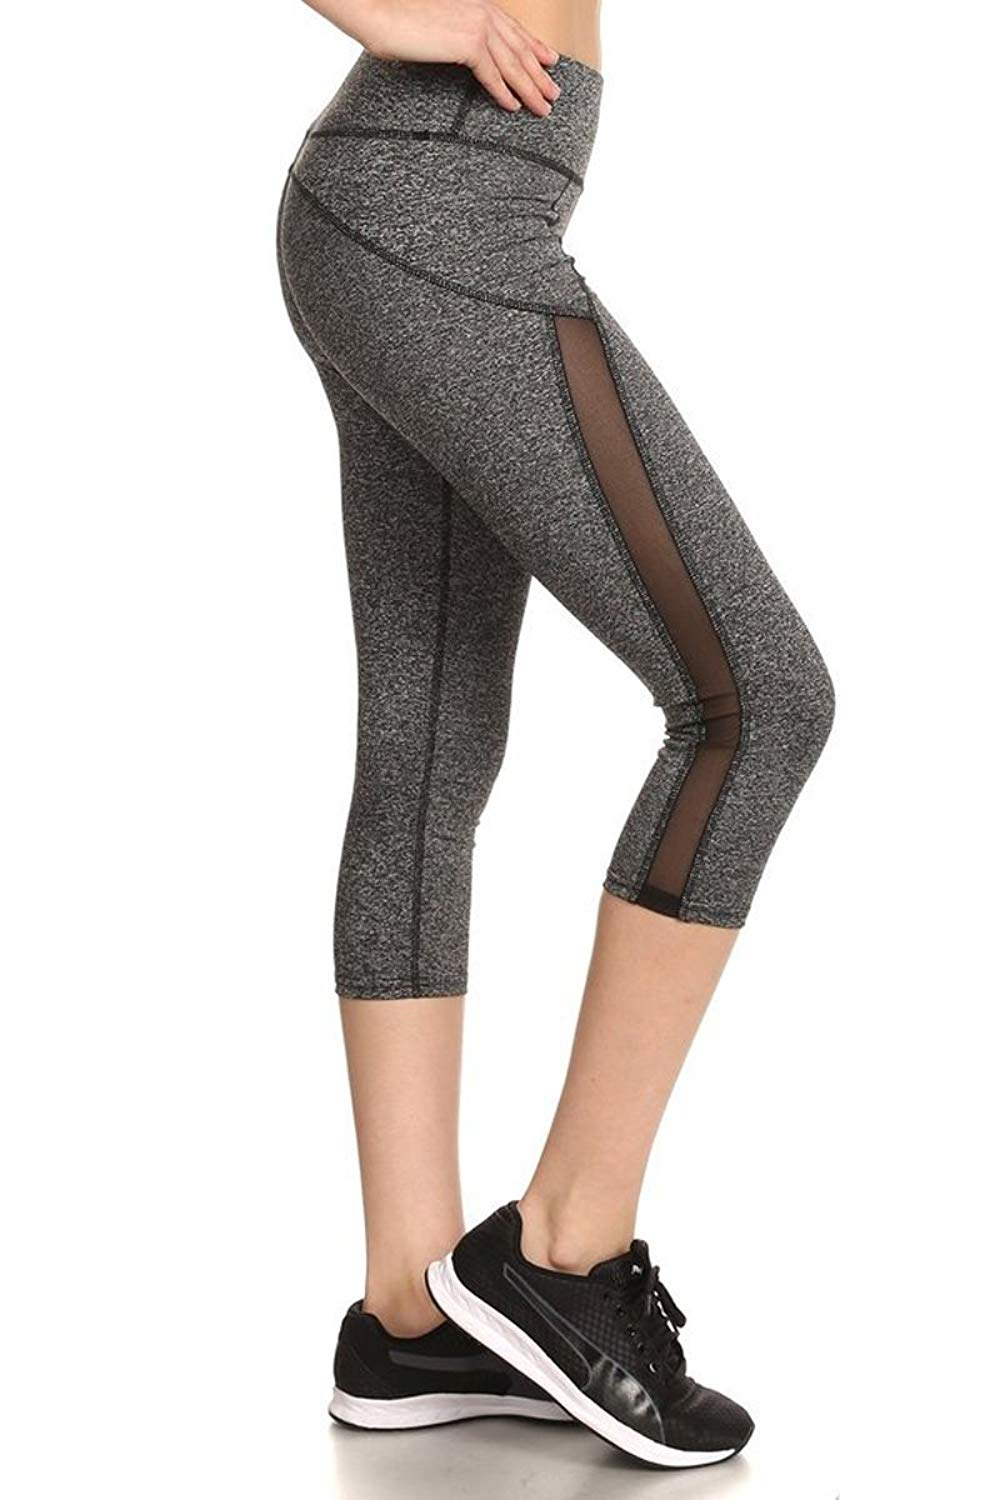 SHOSHO Women's Fitted Stretch Capri Leggings (Dark H.Gray/Mint)